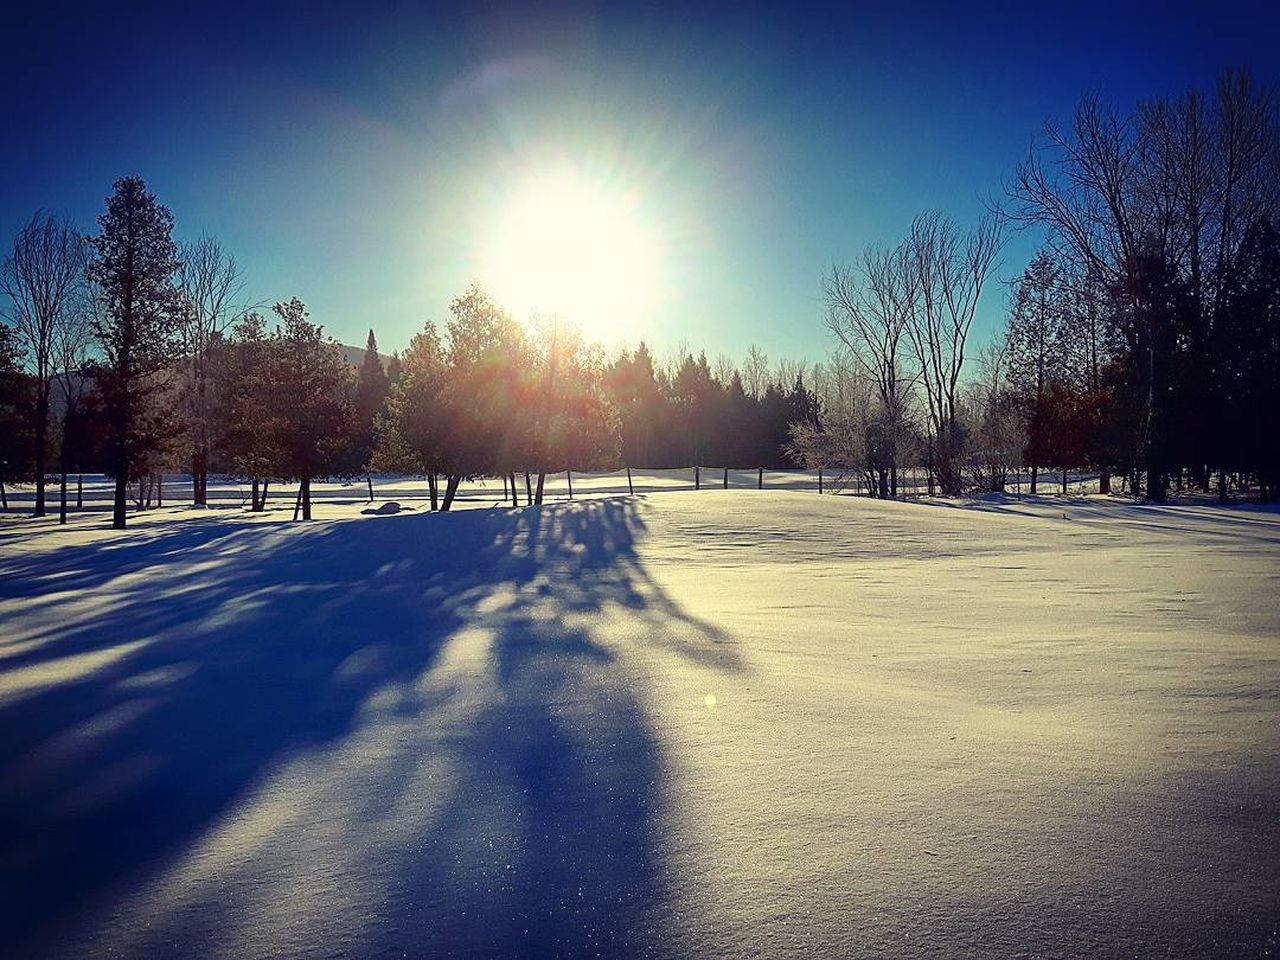 Wake up sunshine Winter Snow Cold Temperature Tree Sky Outdoors No People Day Nature Eyemphotography Earth Contryside Contry Livin Sunrise Sunlight Sunrise - Dawn Landscape_photography Landscape Eyemnaturelovers Sunphotography Sun Beauty In Nature Wintertime Winter Winter Landscape